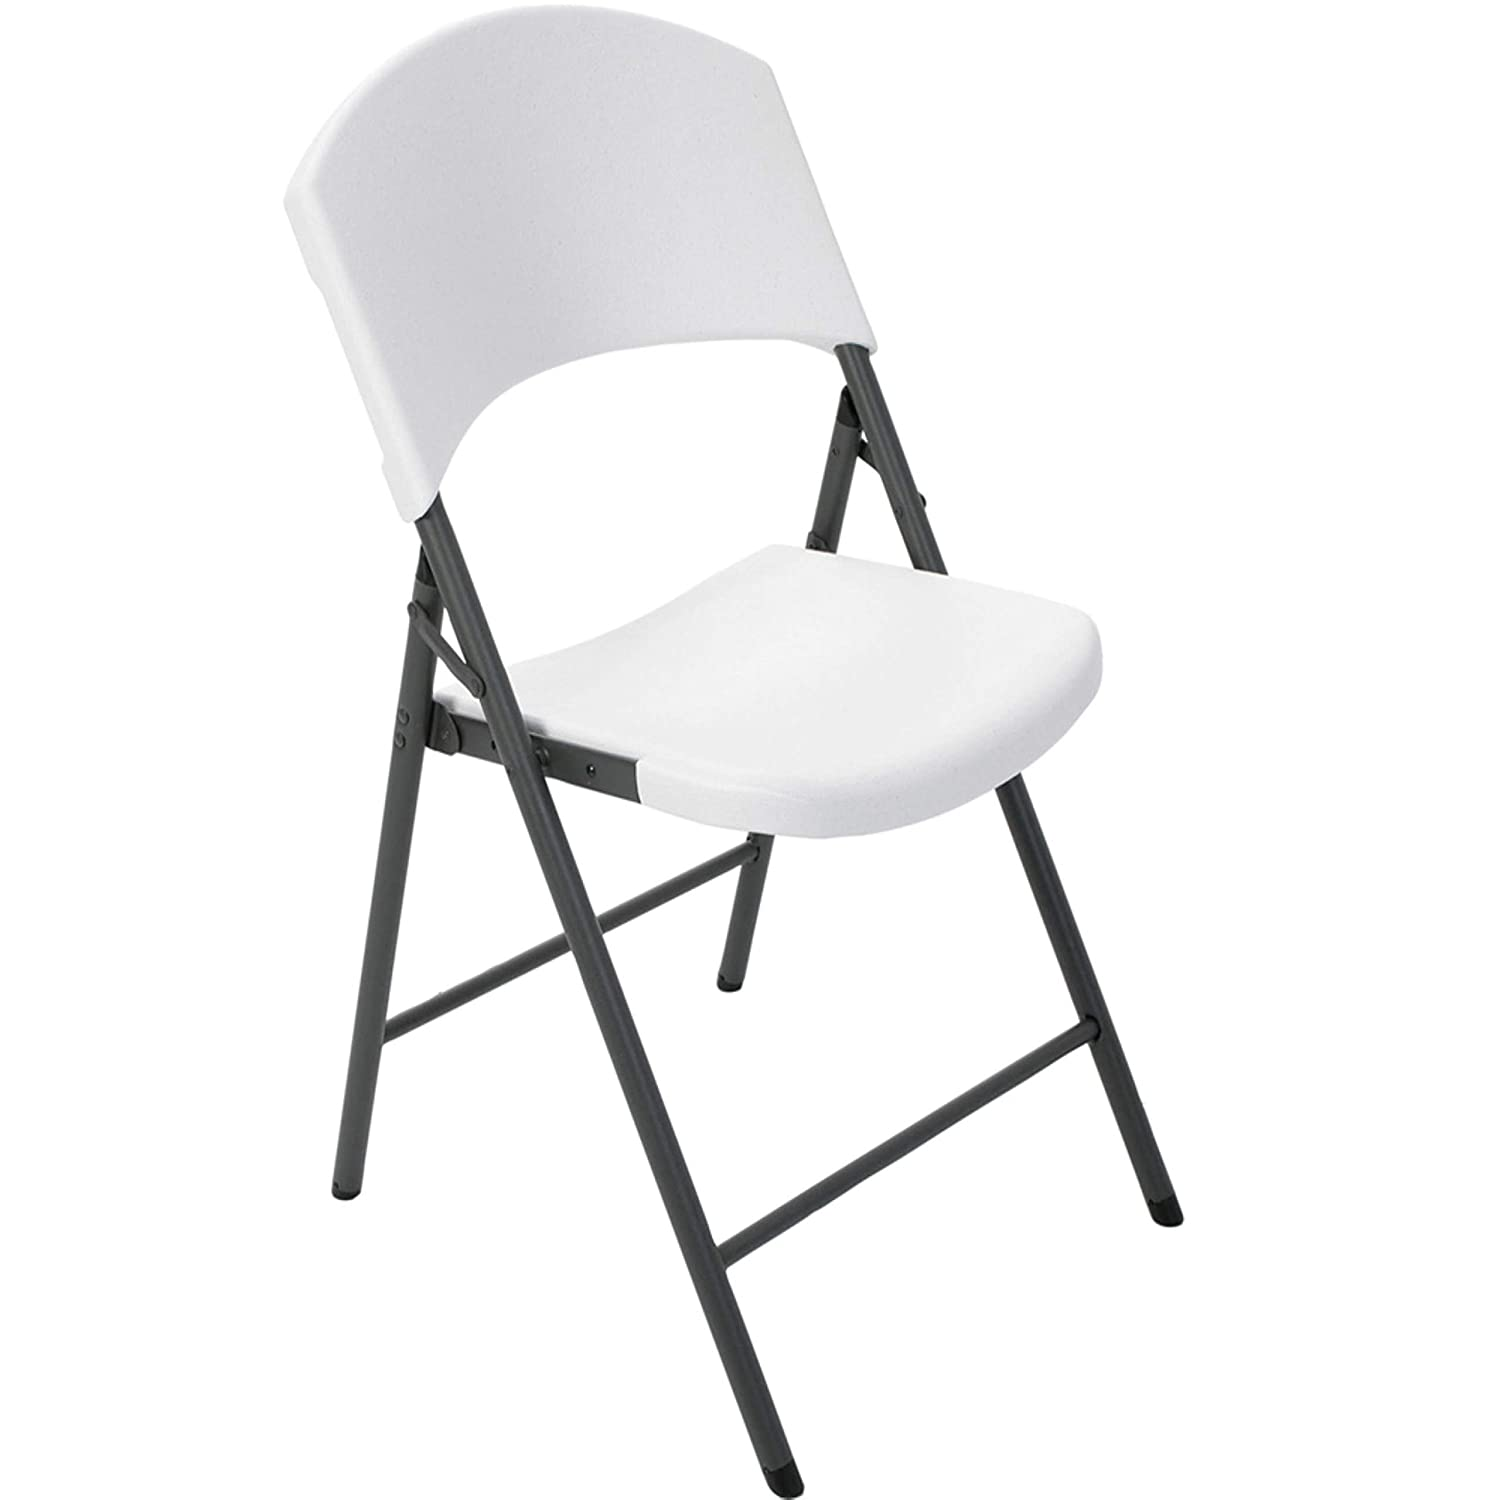 Awesome Lifetime Products Contoured Folding Chair White Machost Co Dining Chair Design Ideas Machostcouk